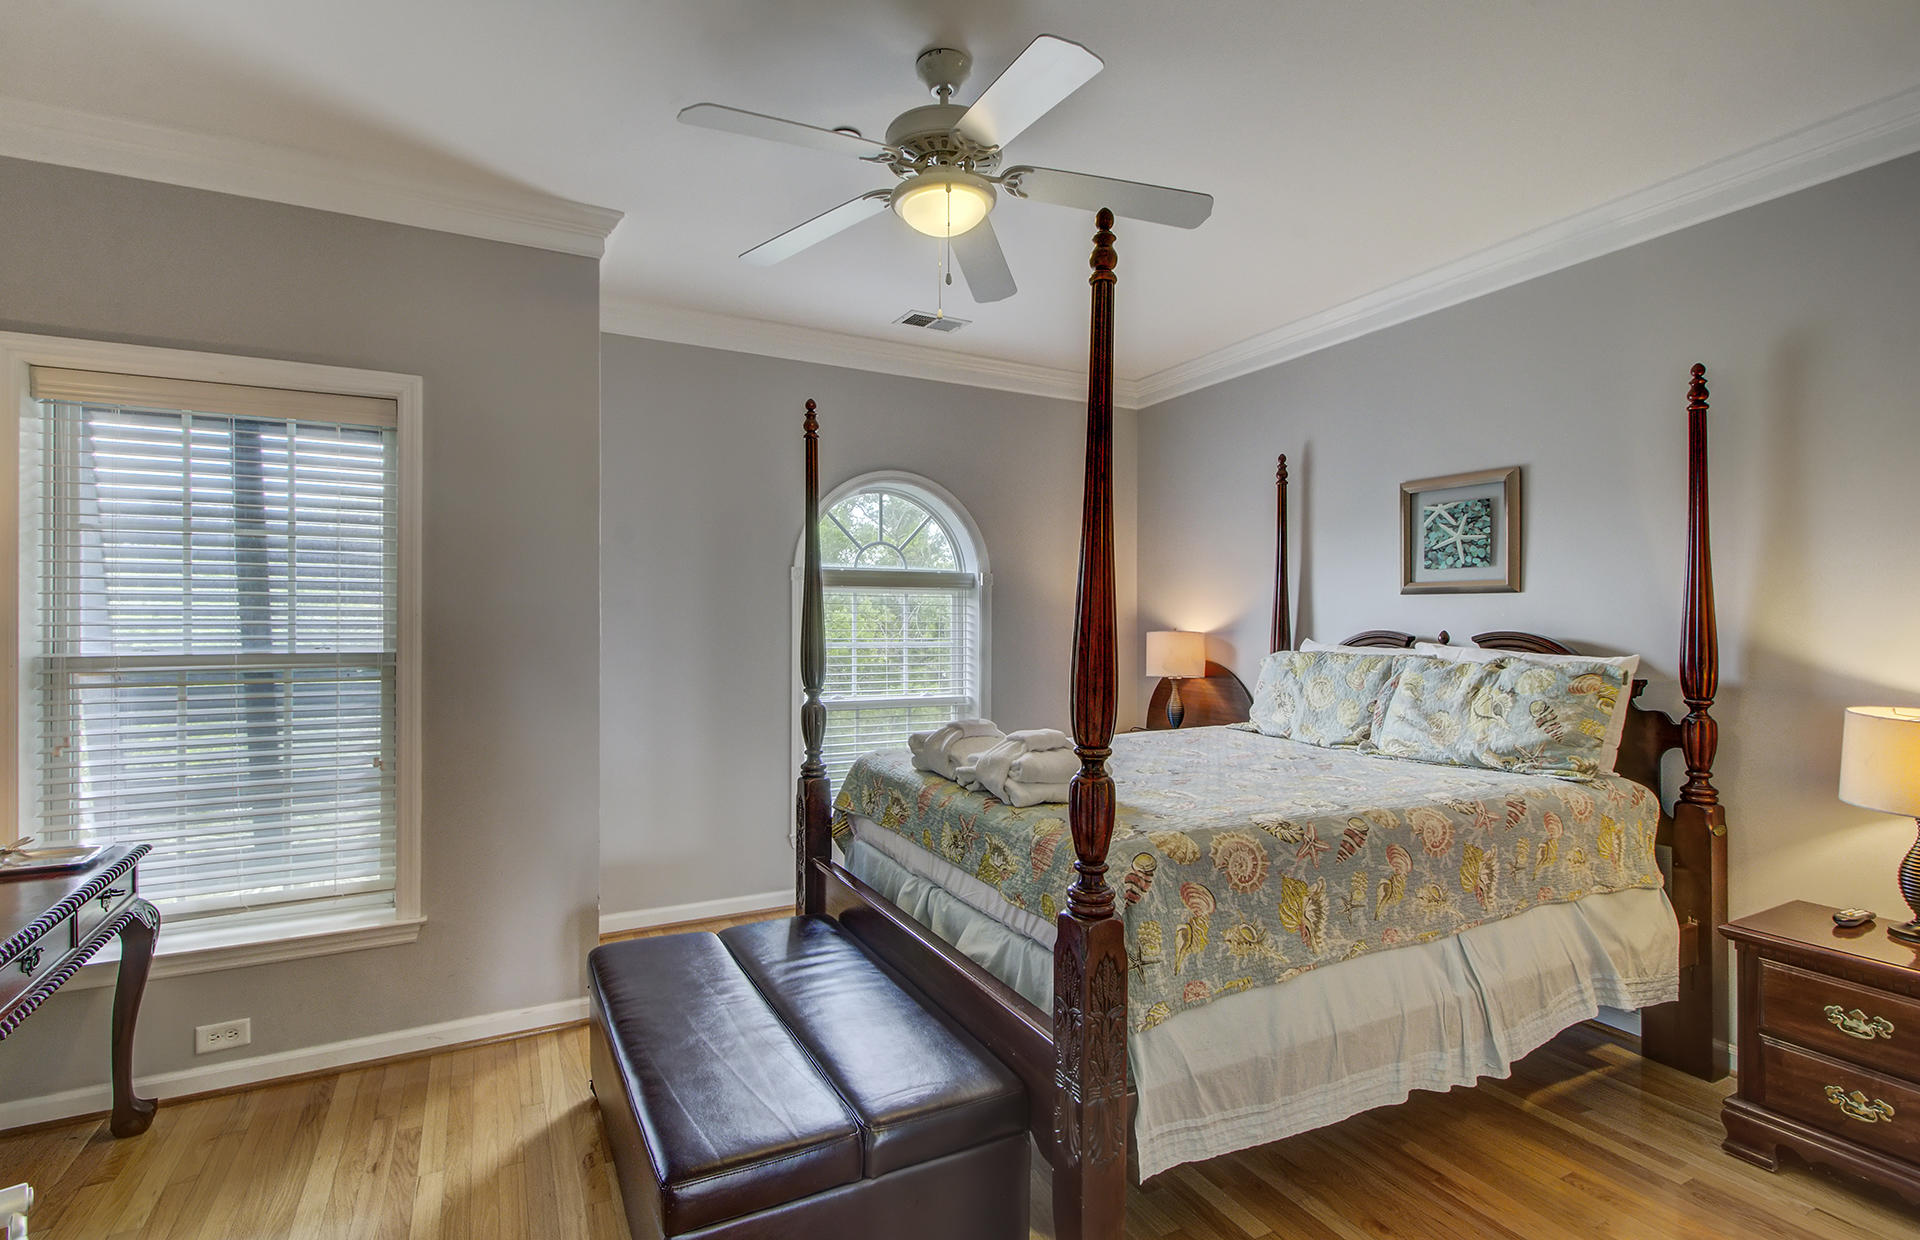 Waters Edge Homes For Sale - 80 2nd, Folly Beach, SC - 0